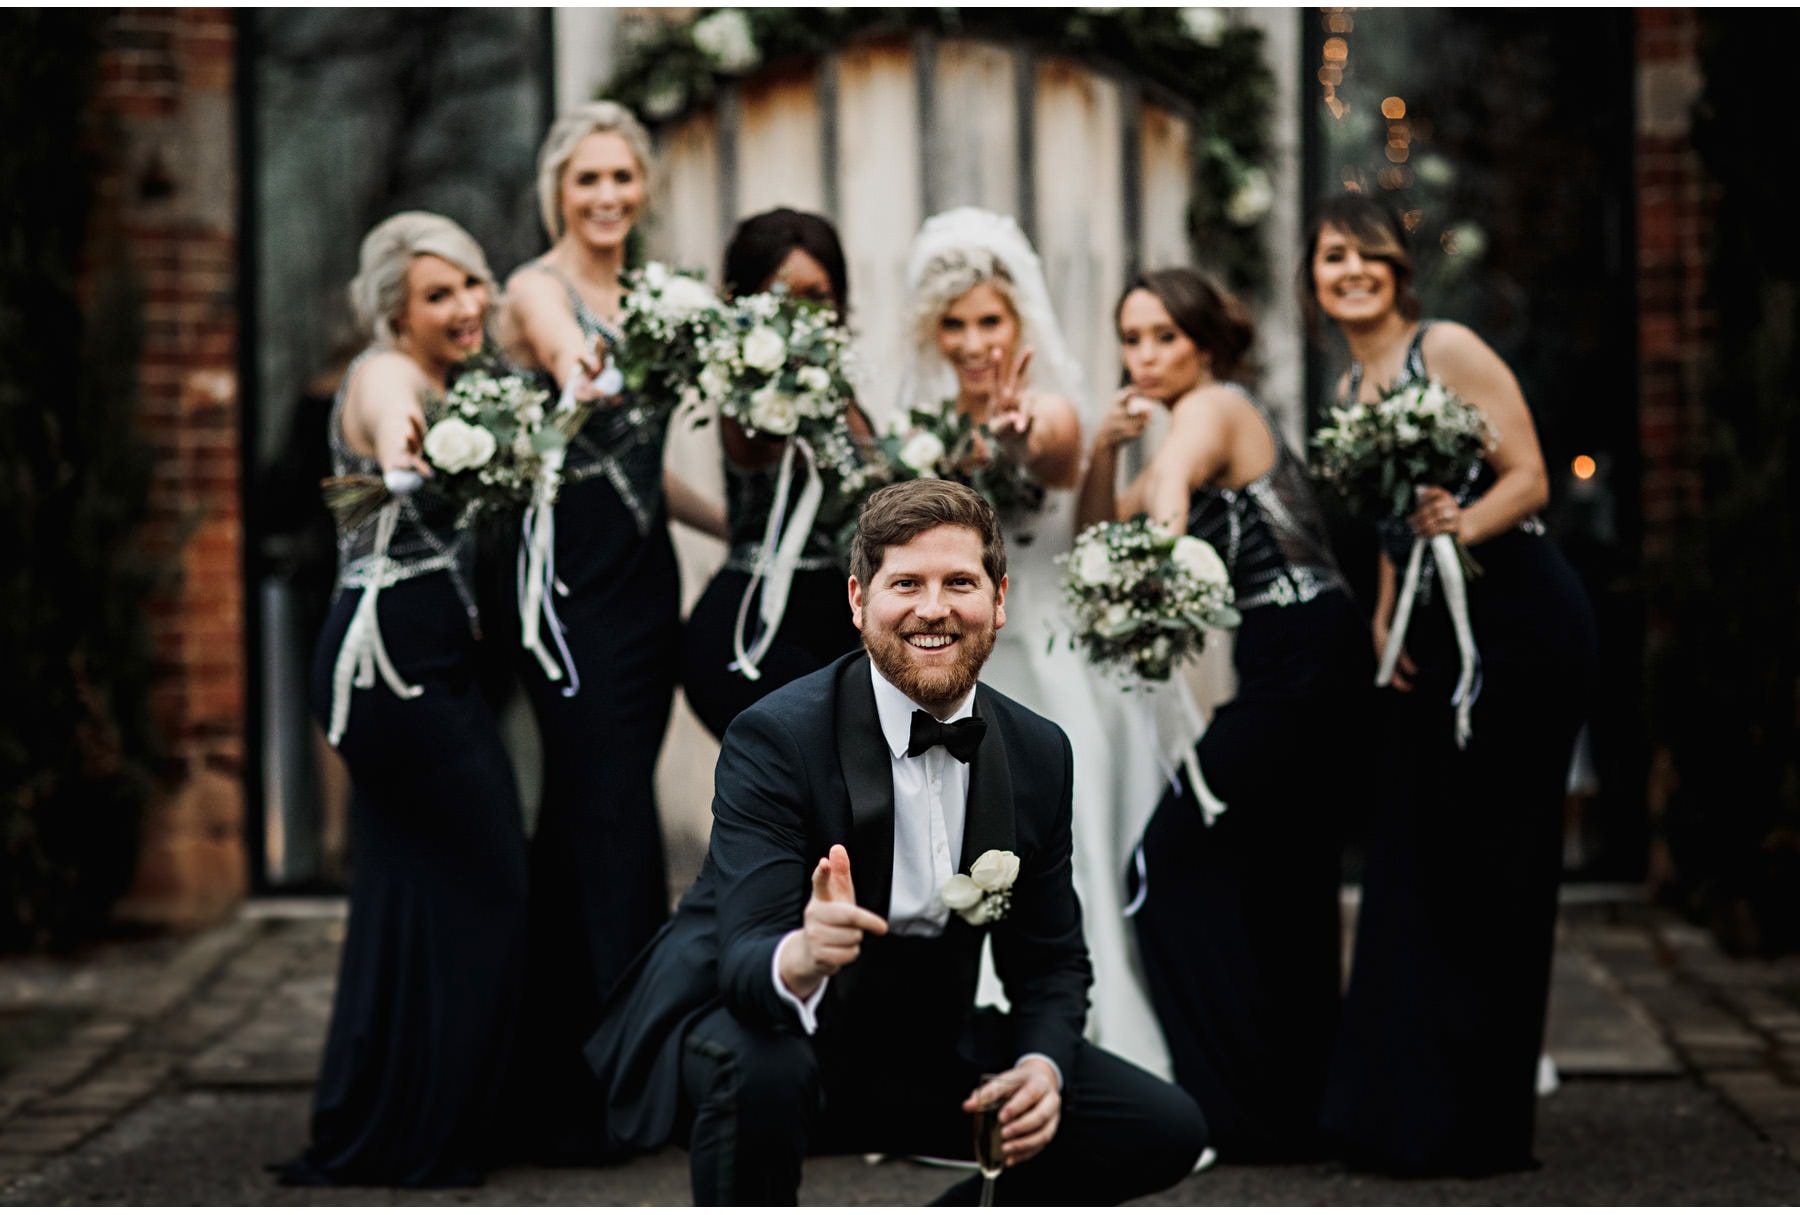 The bride, her brother and the bridesmaids